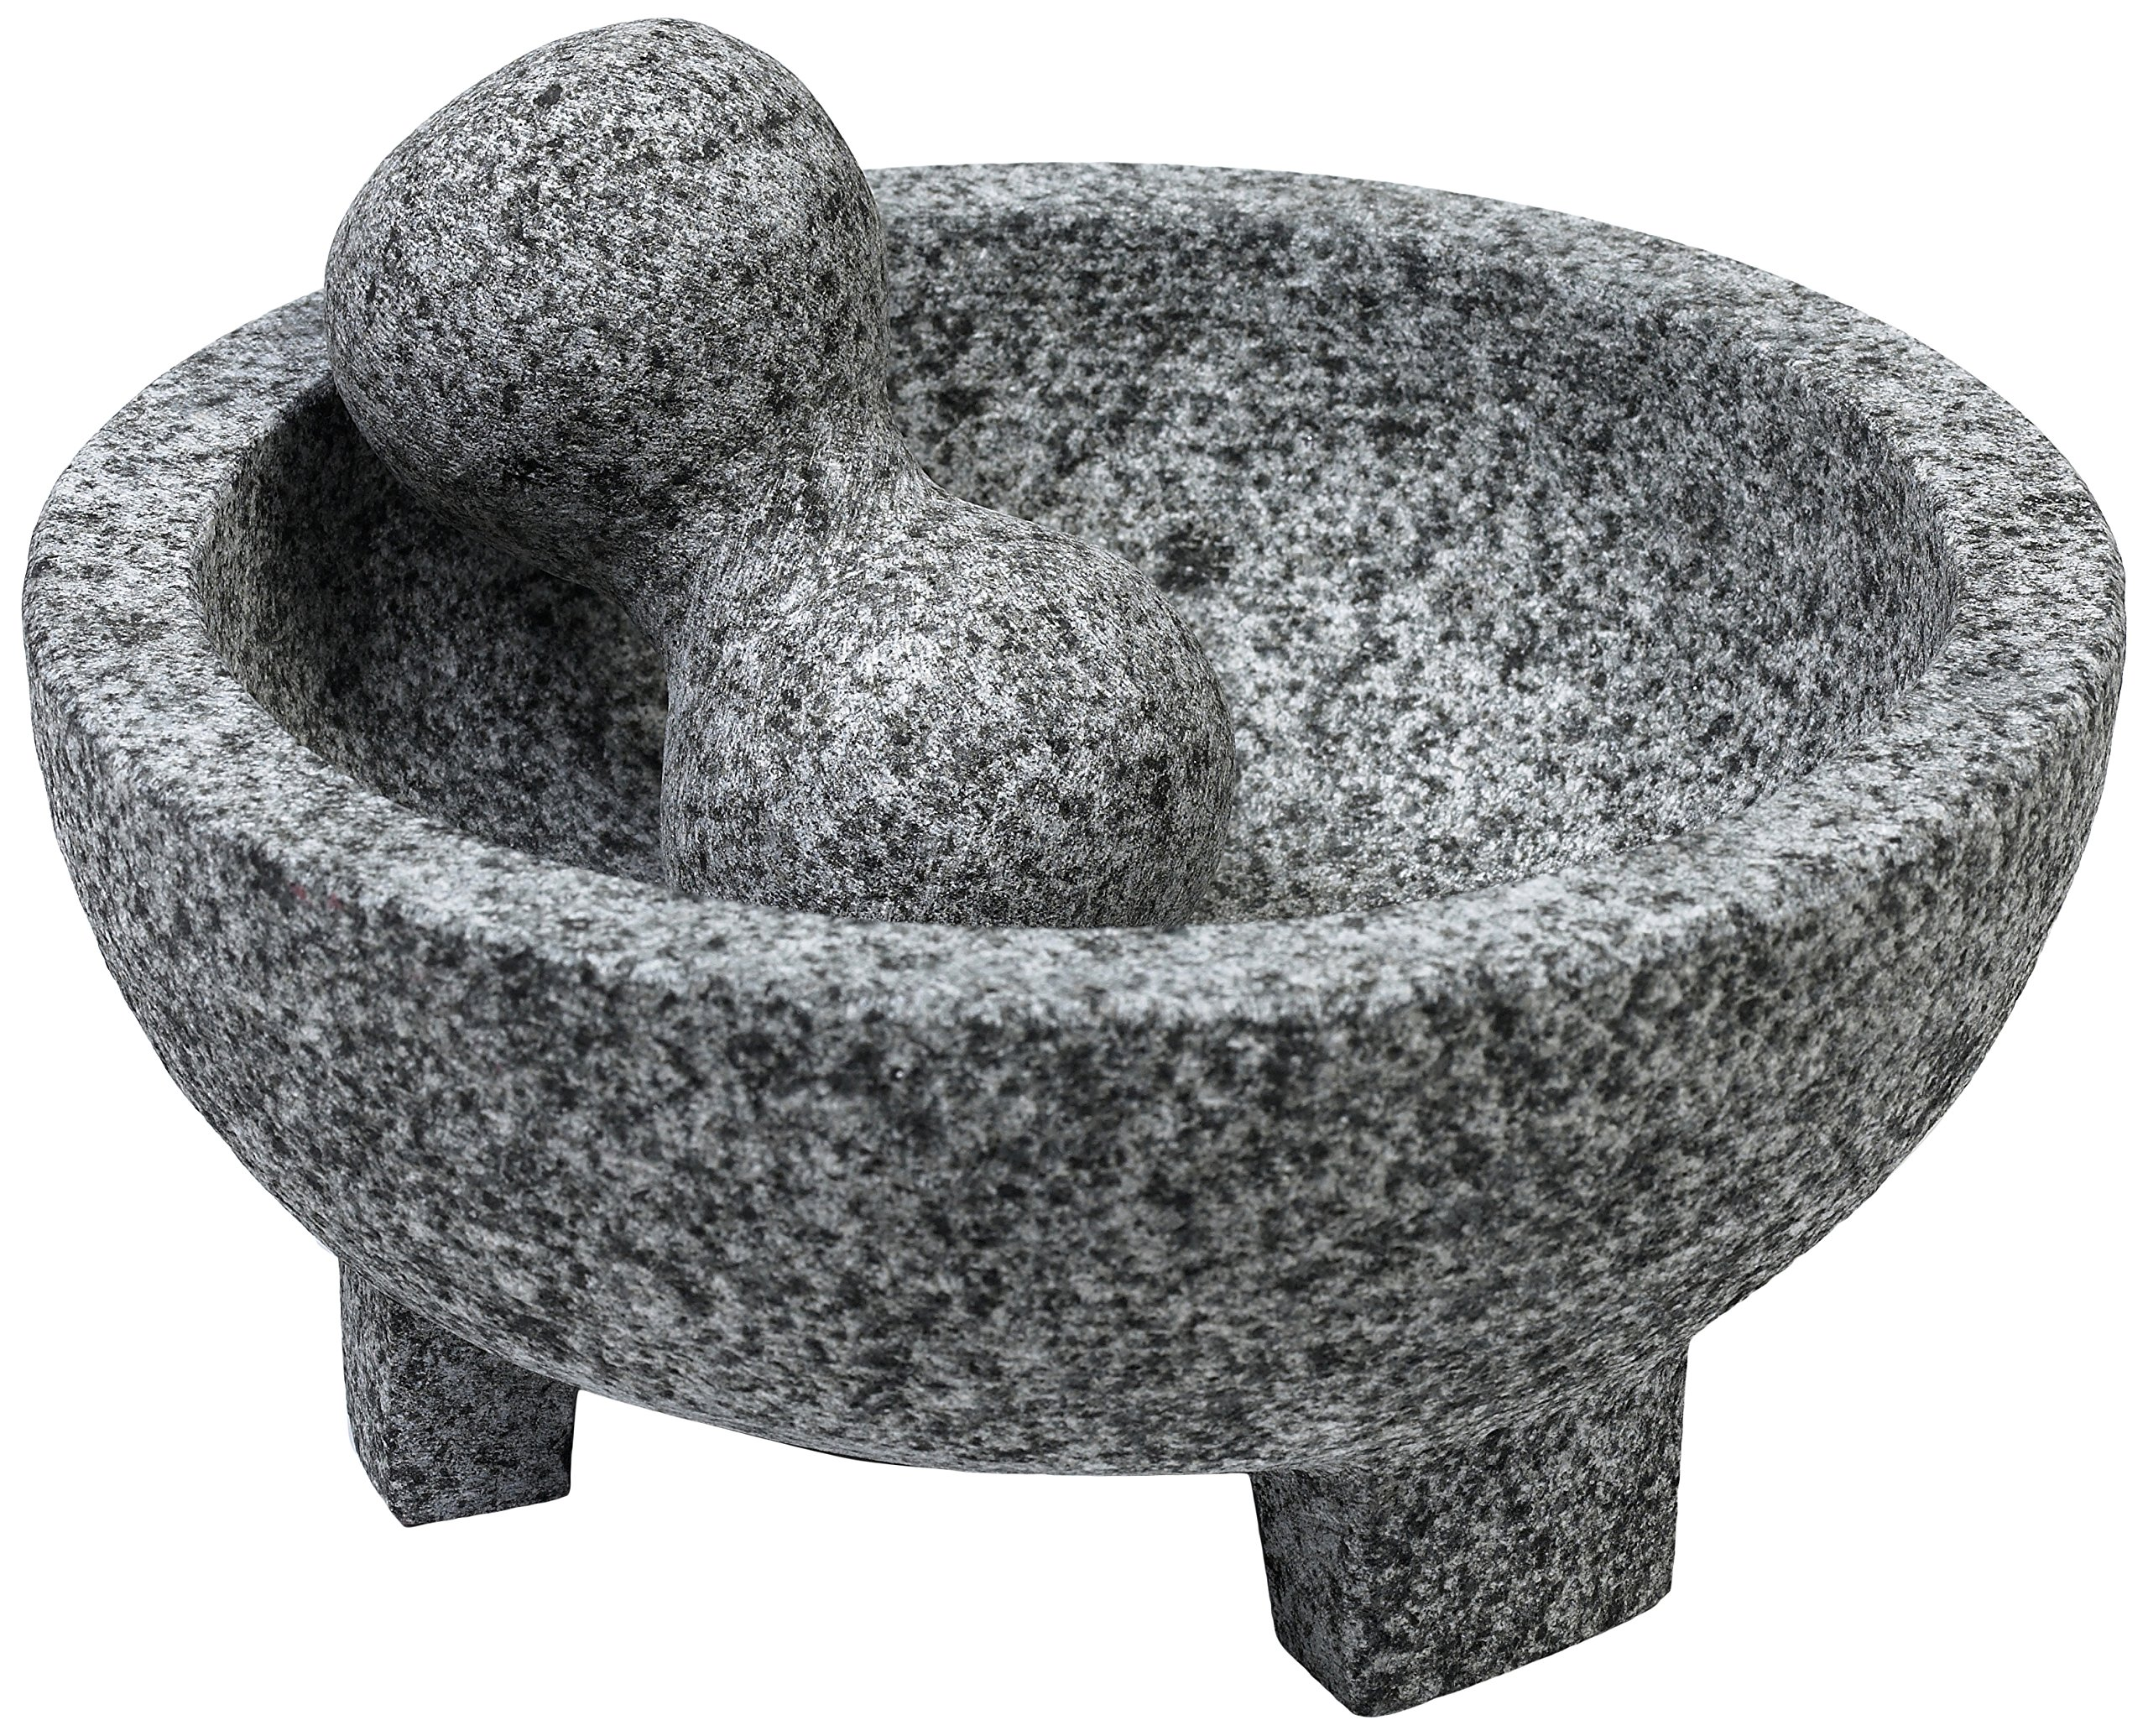 IMUSA USA MEXI-2013 Granite Molcajete Spice Grinder 6-Inch, Gray by Imusa